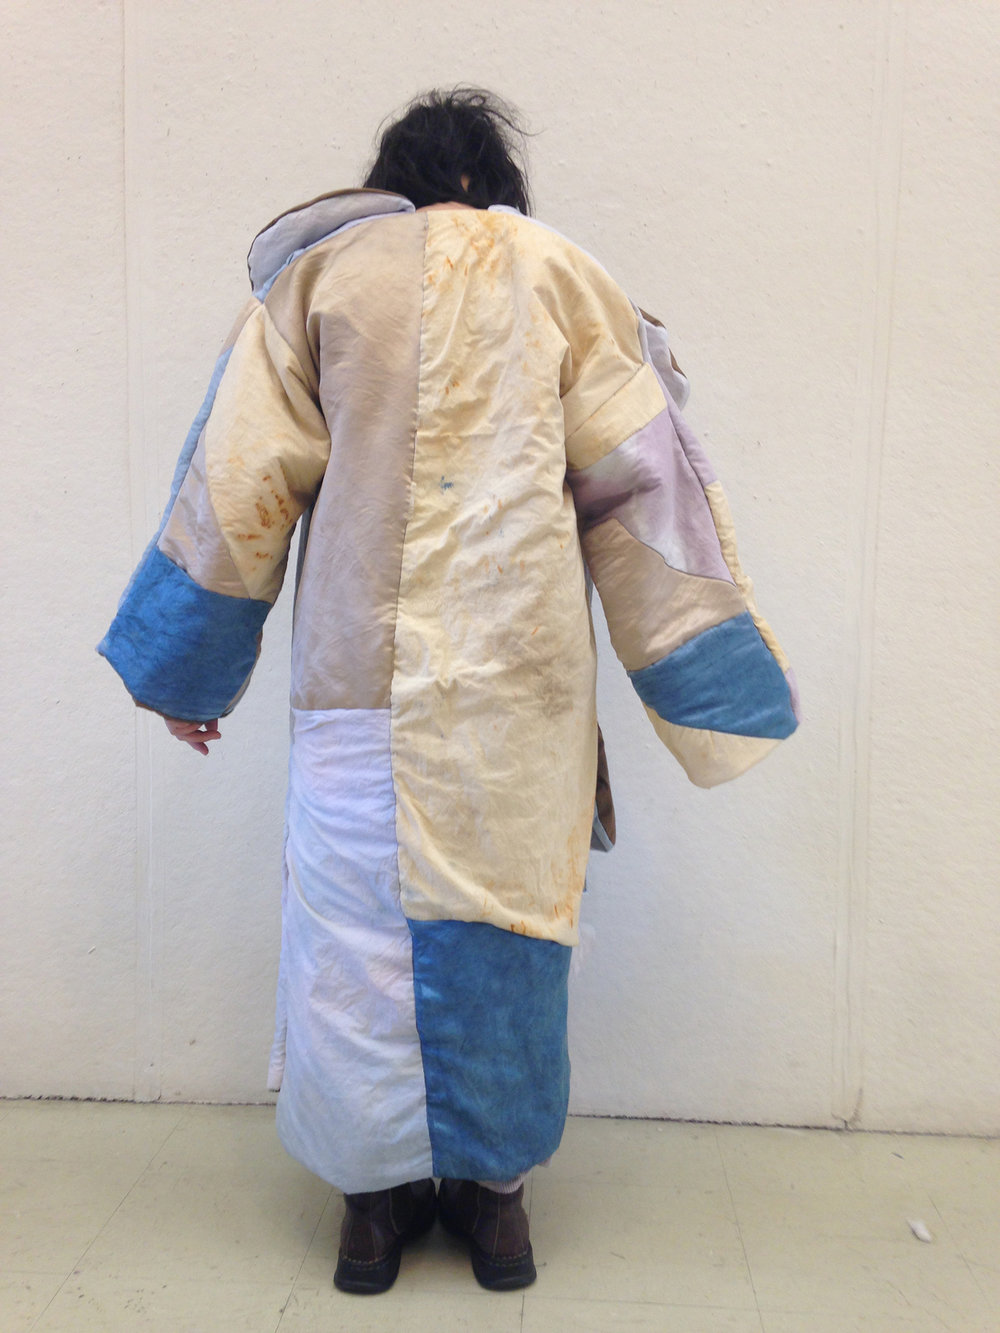 the librian's coat    (back view)